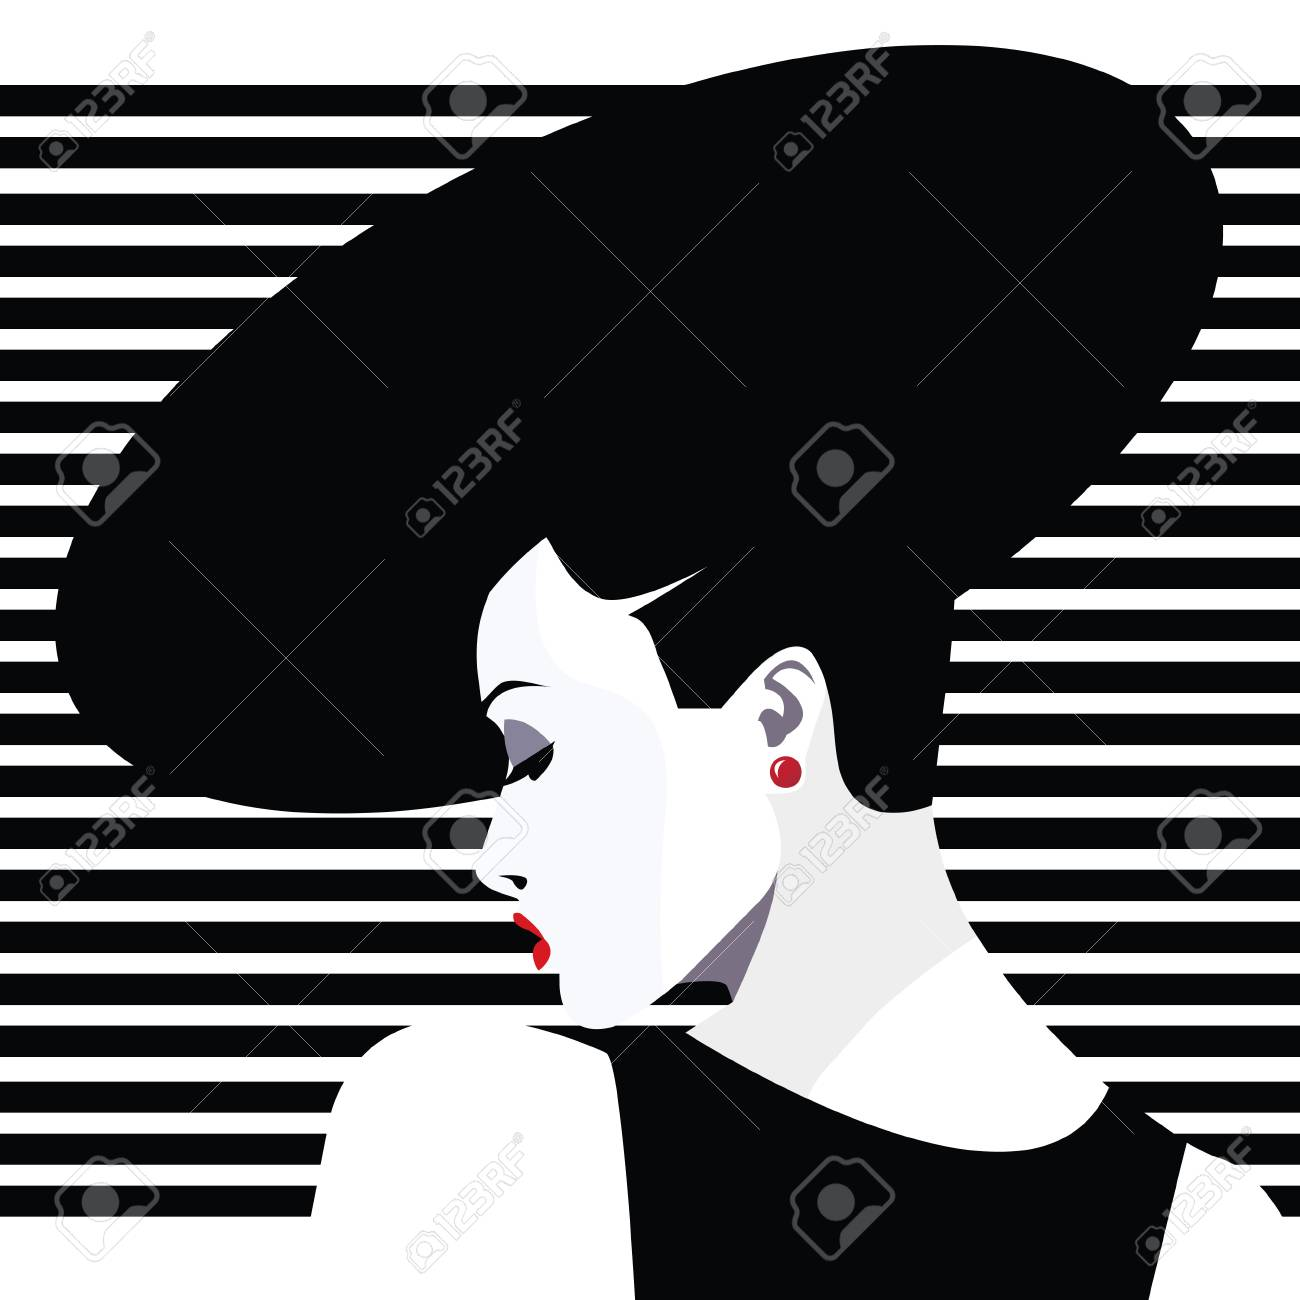 Fashionable woman in pop art style icon stock vector 85578443